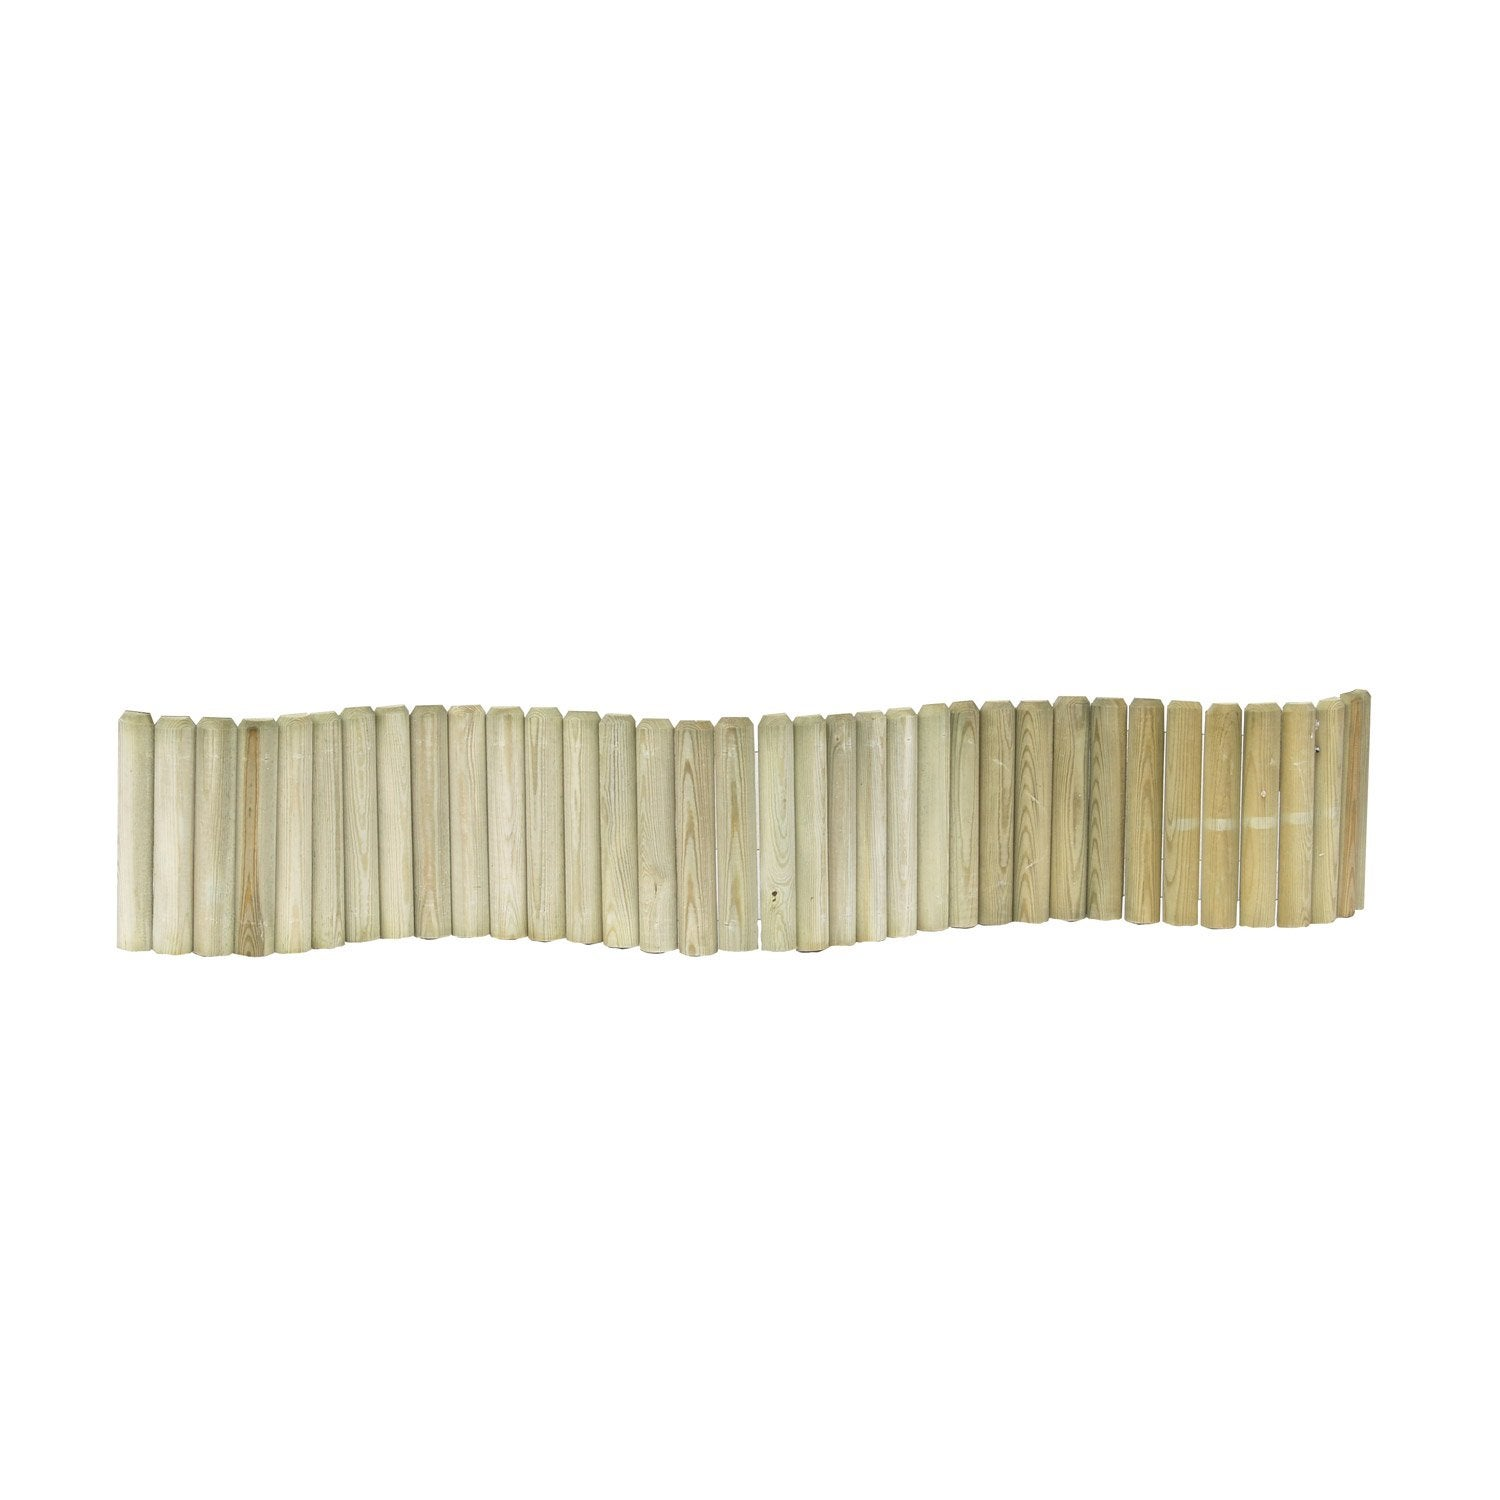 bordure planter 1 2 rondin bois naturel x cm